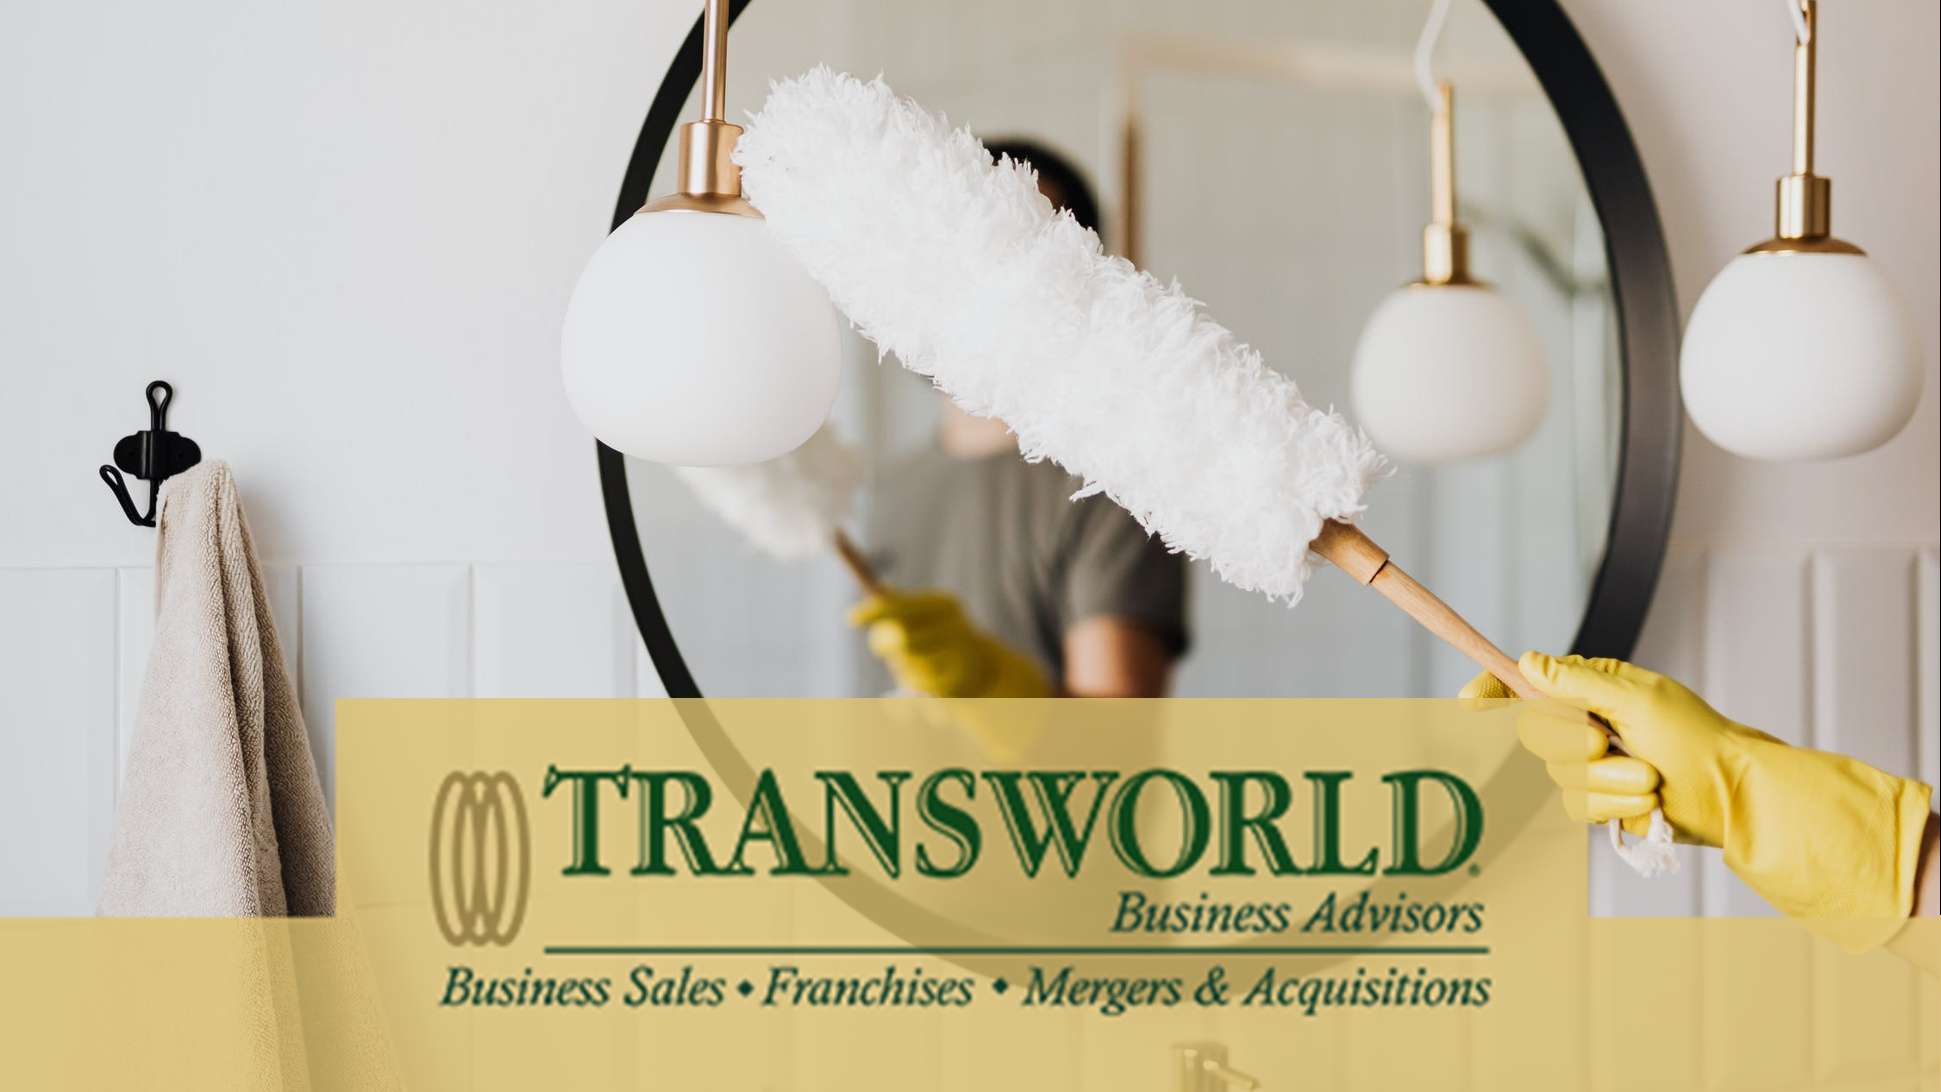 Franchised Maid Service in Katy with Large Territory